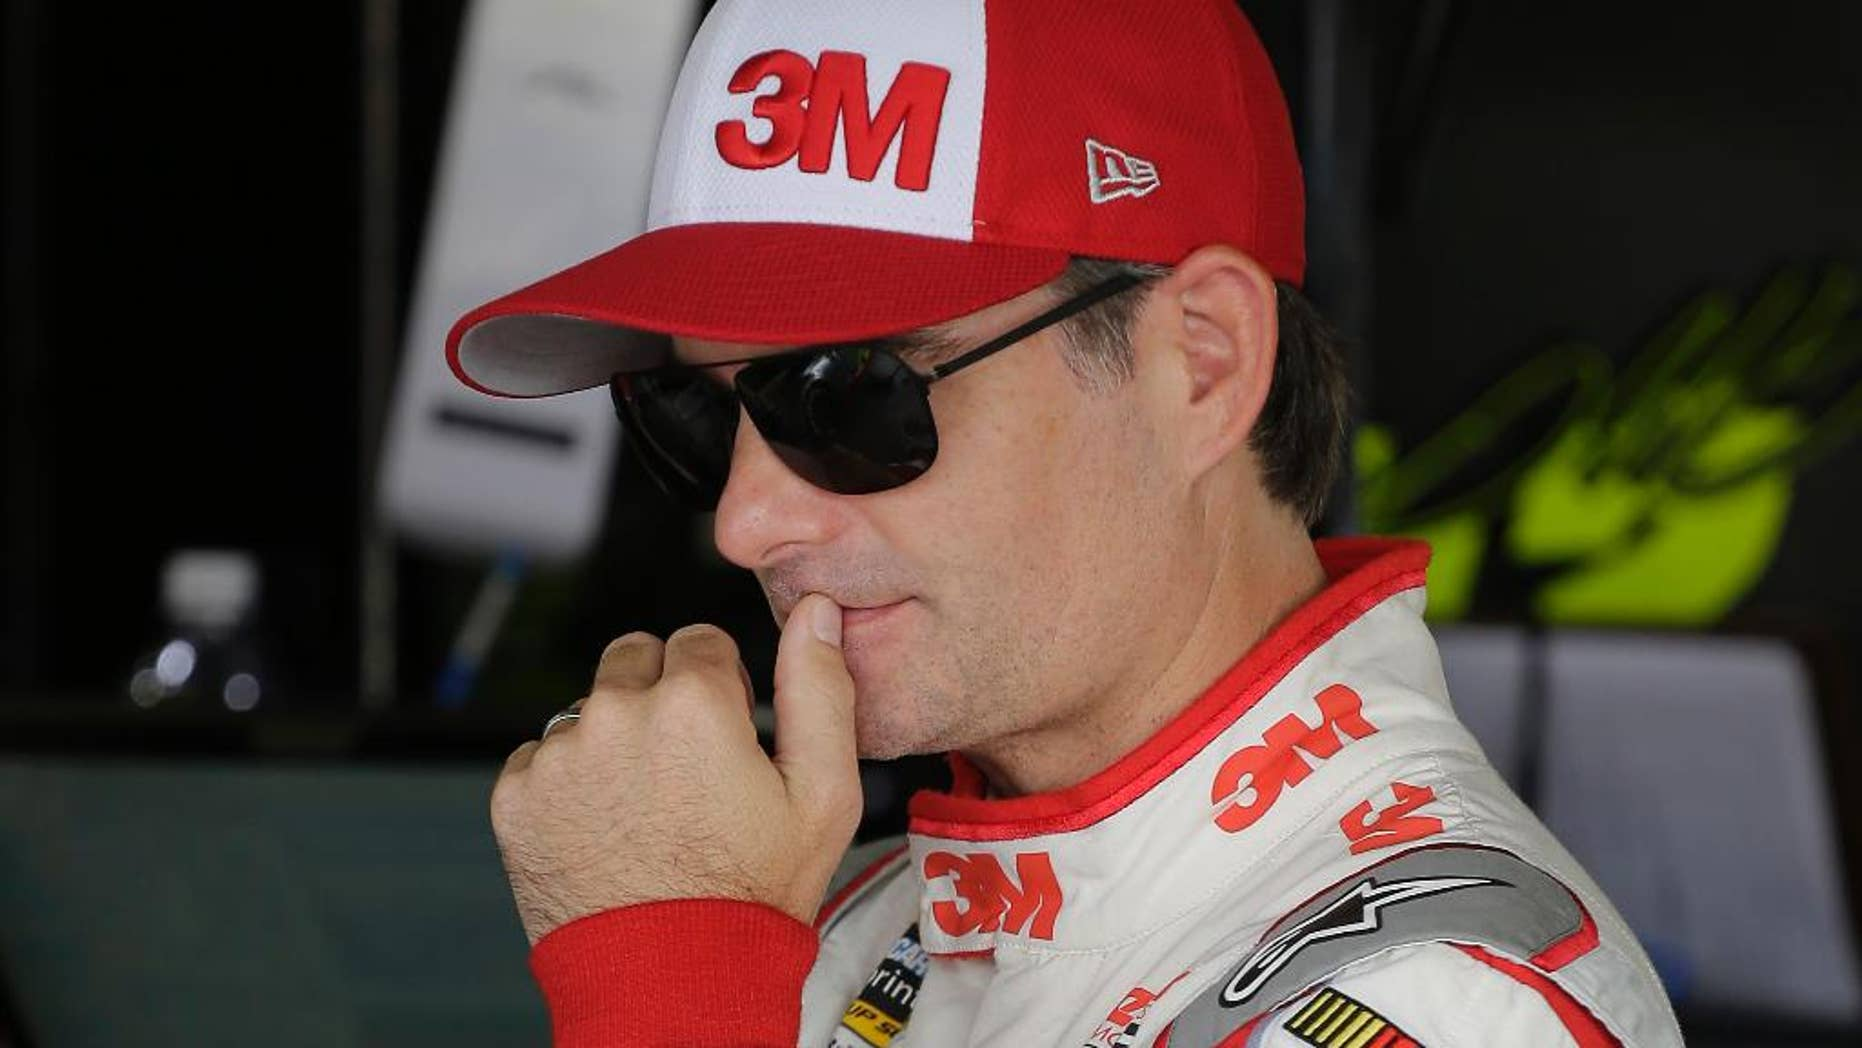 Jeff Gordon stands in the garage before a NASCAR Sprint Cup practice session at Darlington Raceway in Darlington, S.C., Friday, Sept. 4, 2015. (AP Photo/Terry Renna)